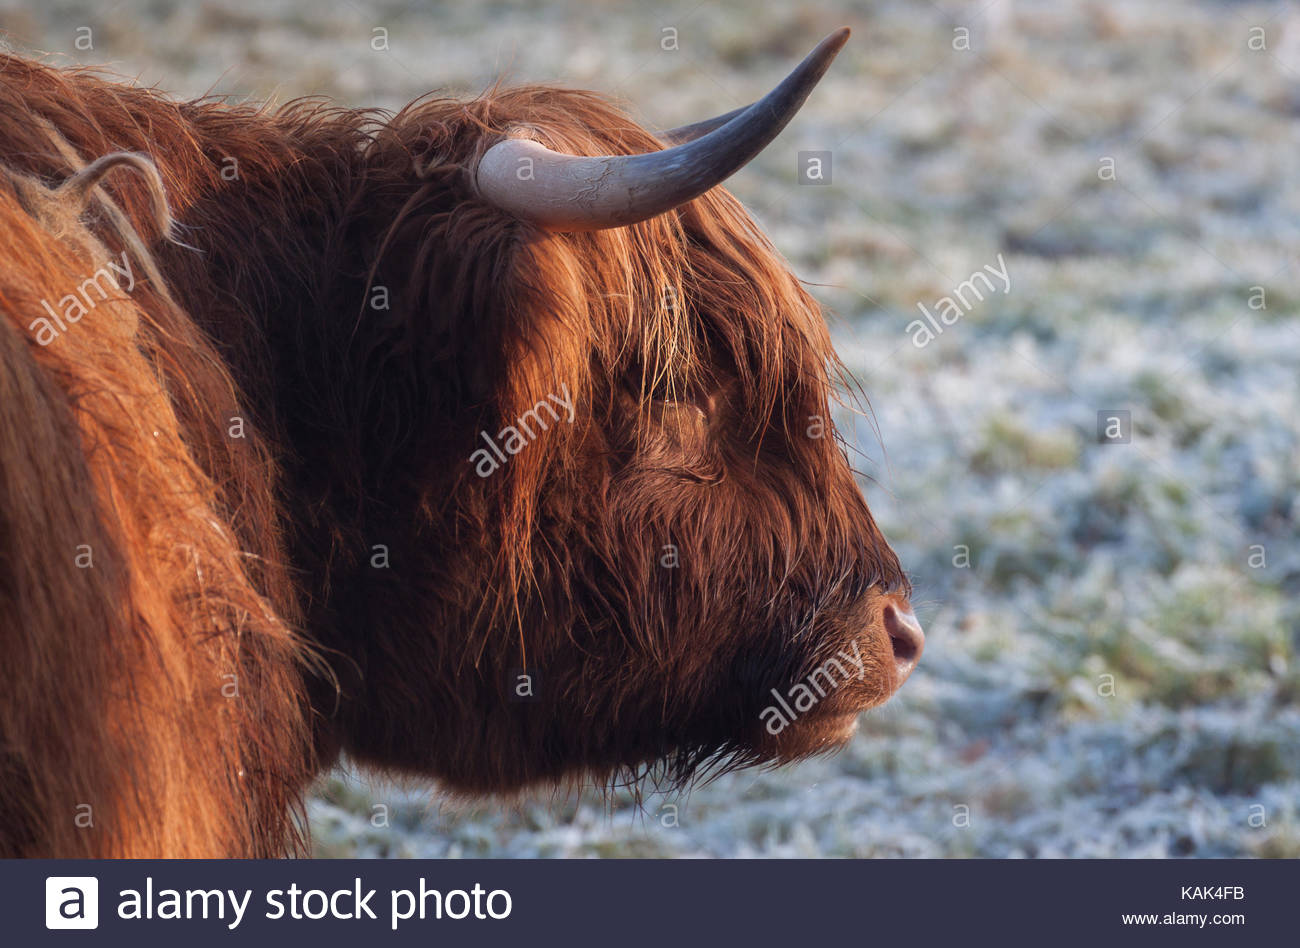 Portrait of a highland cattle with long horns on a snowy field in winter. - Stock Image